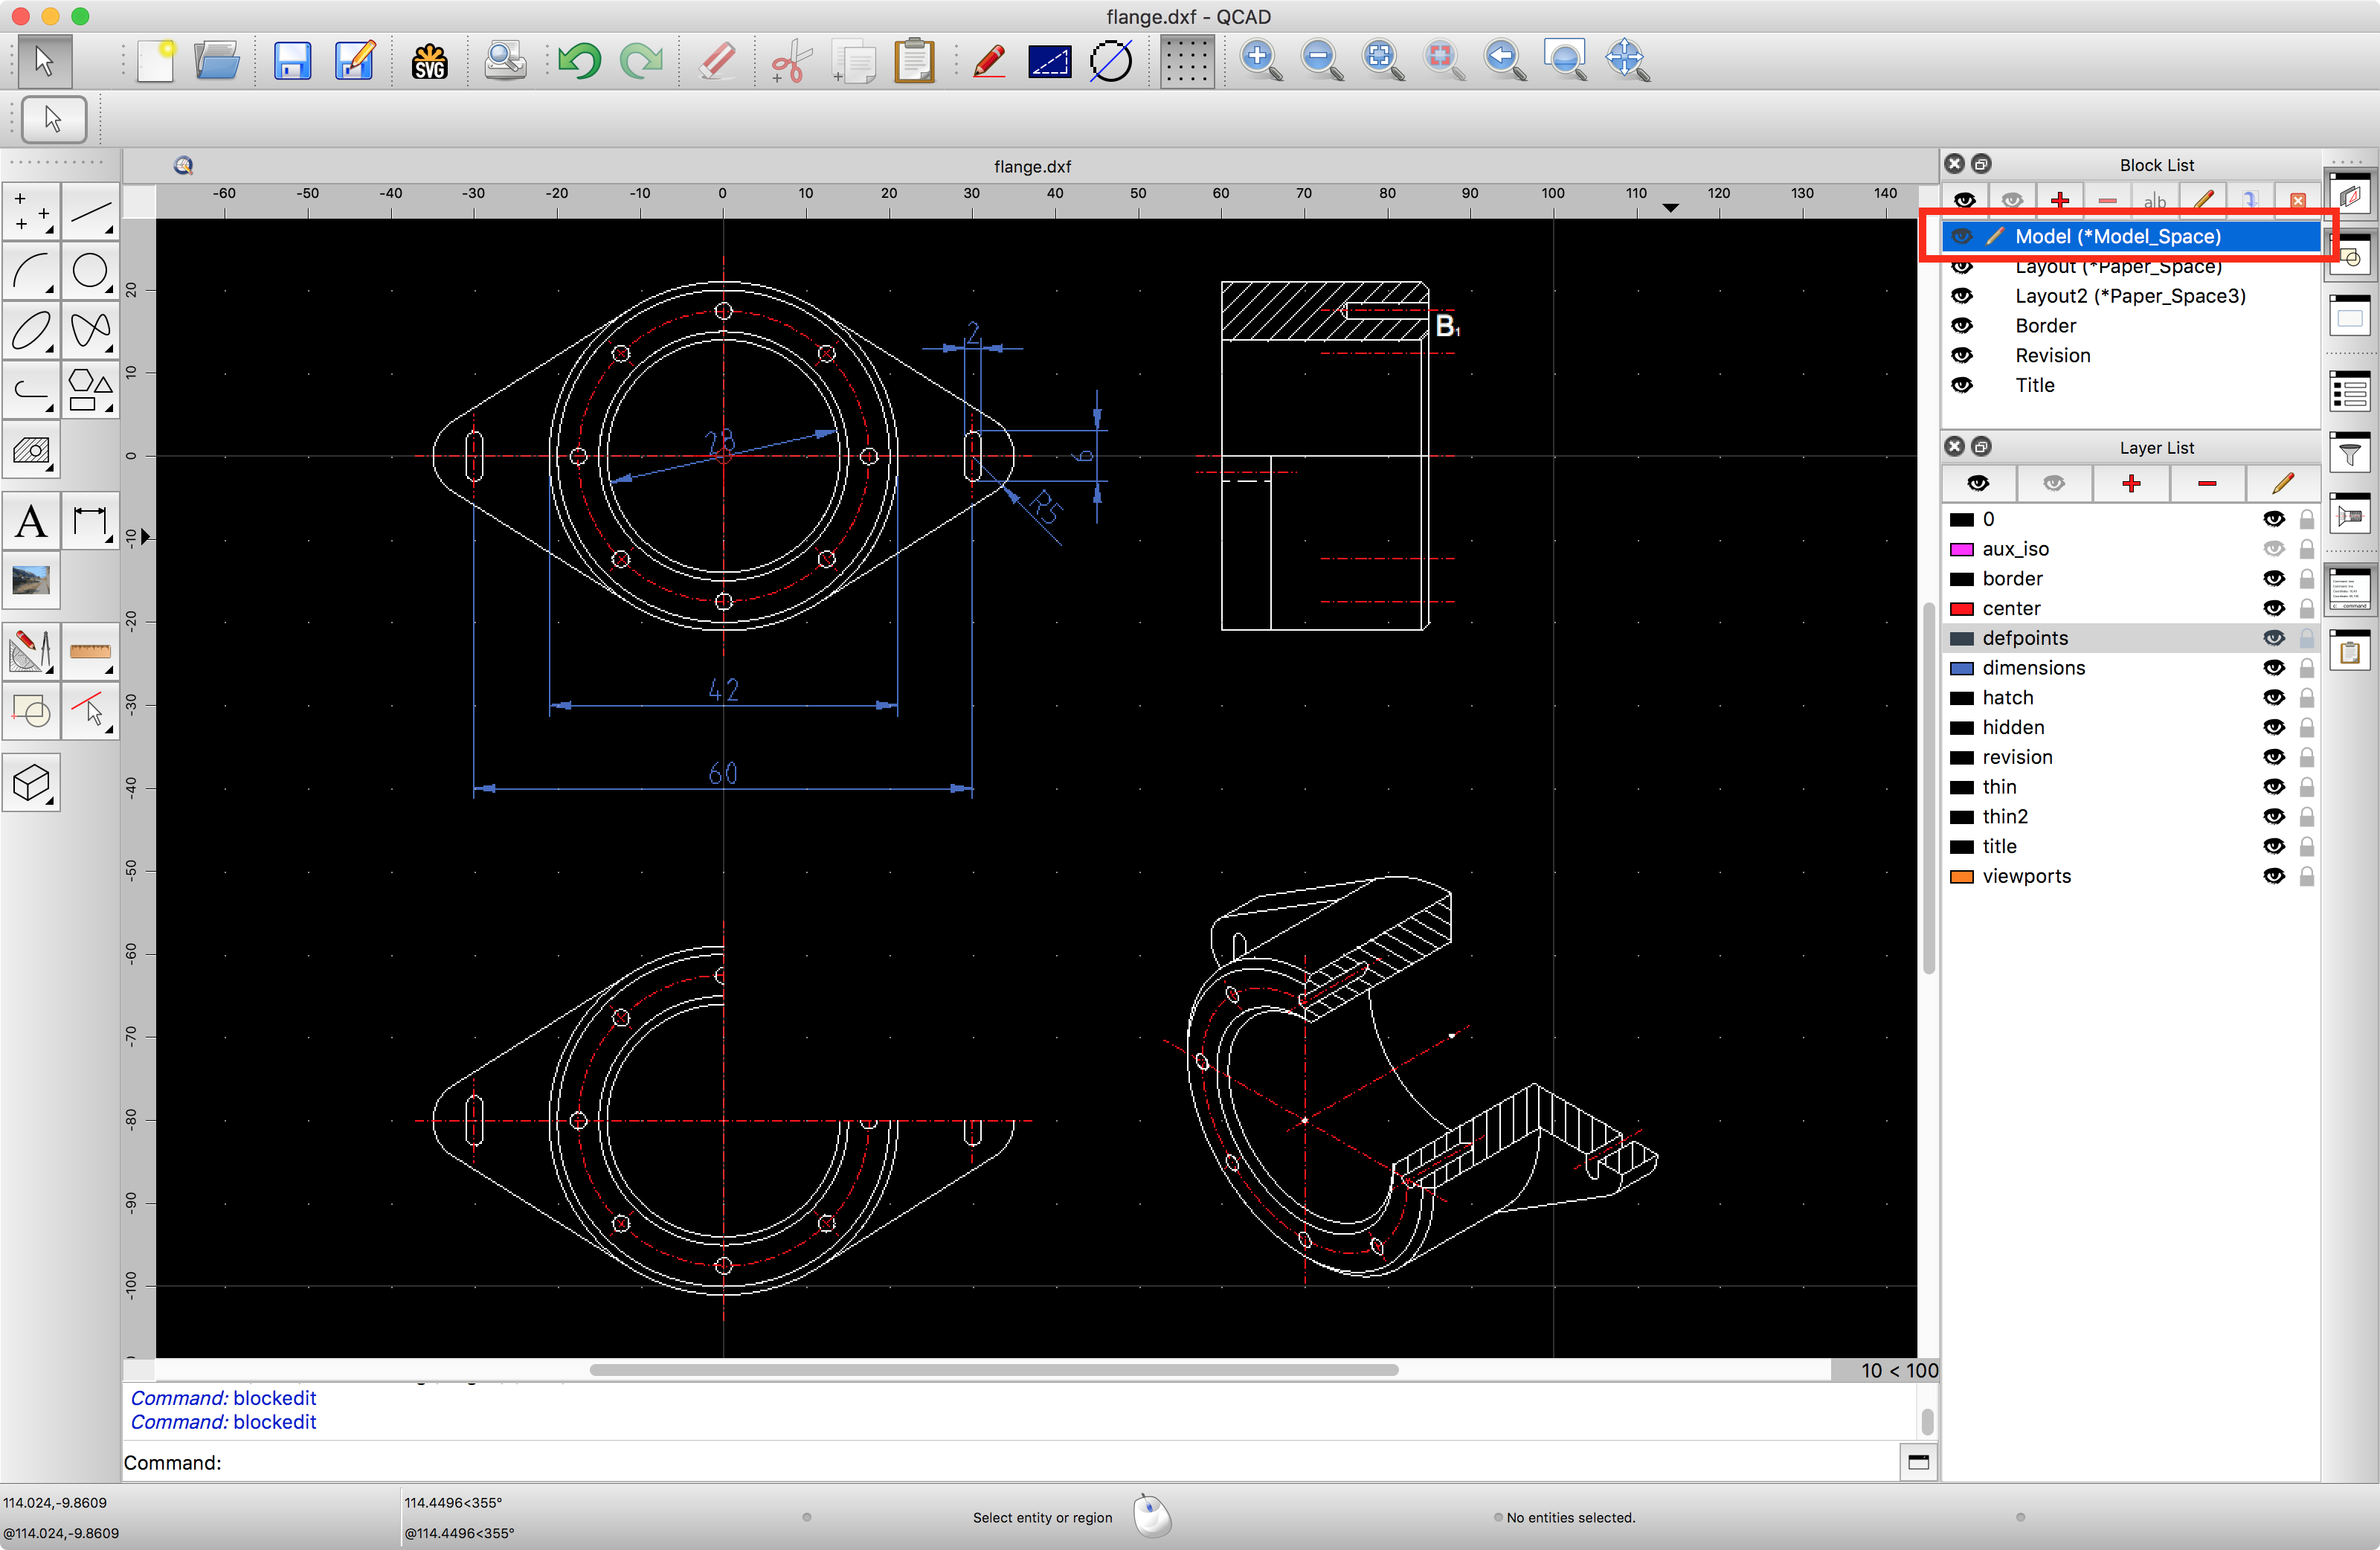 QCAD - Tutorial: Working with Layout Blocks and Viewports